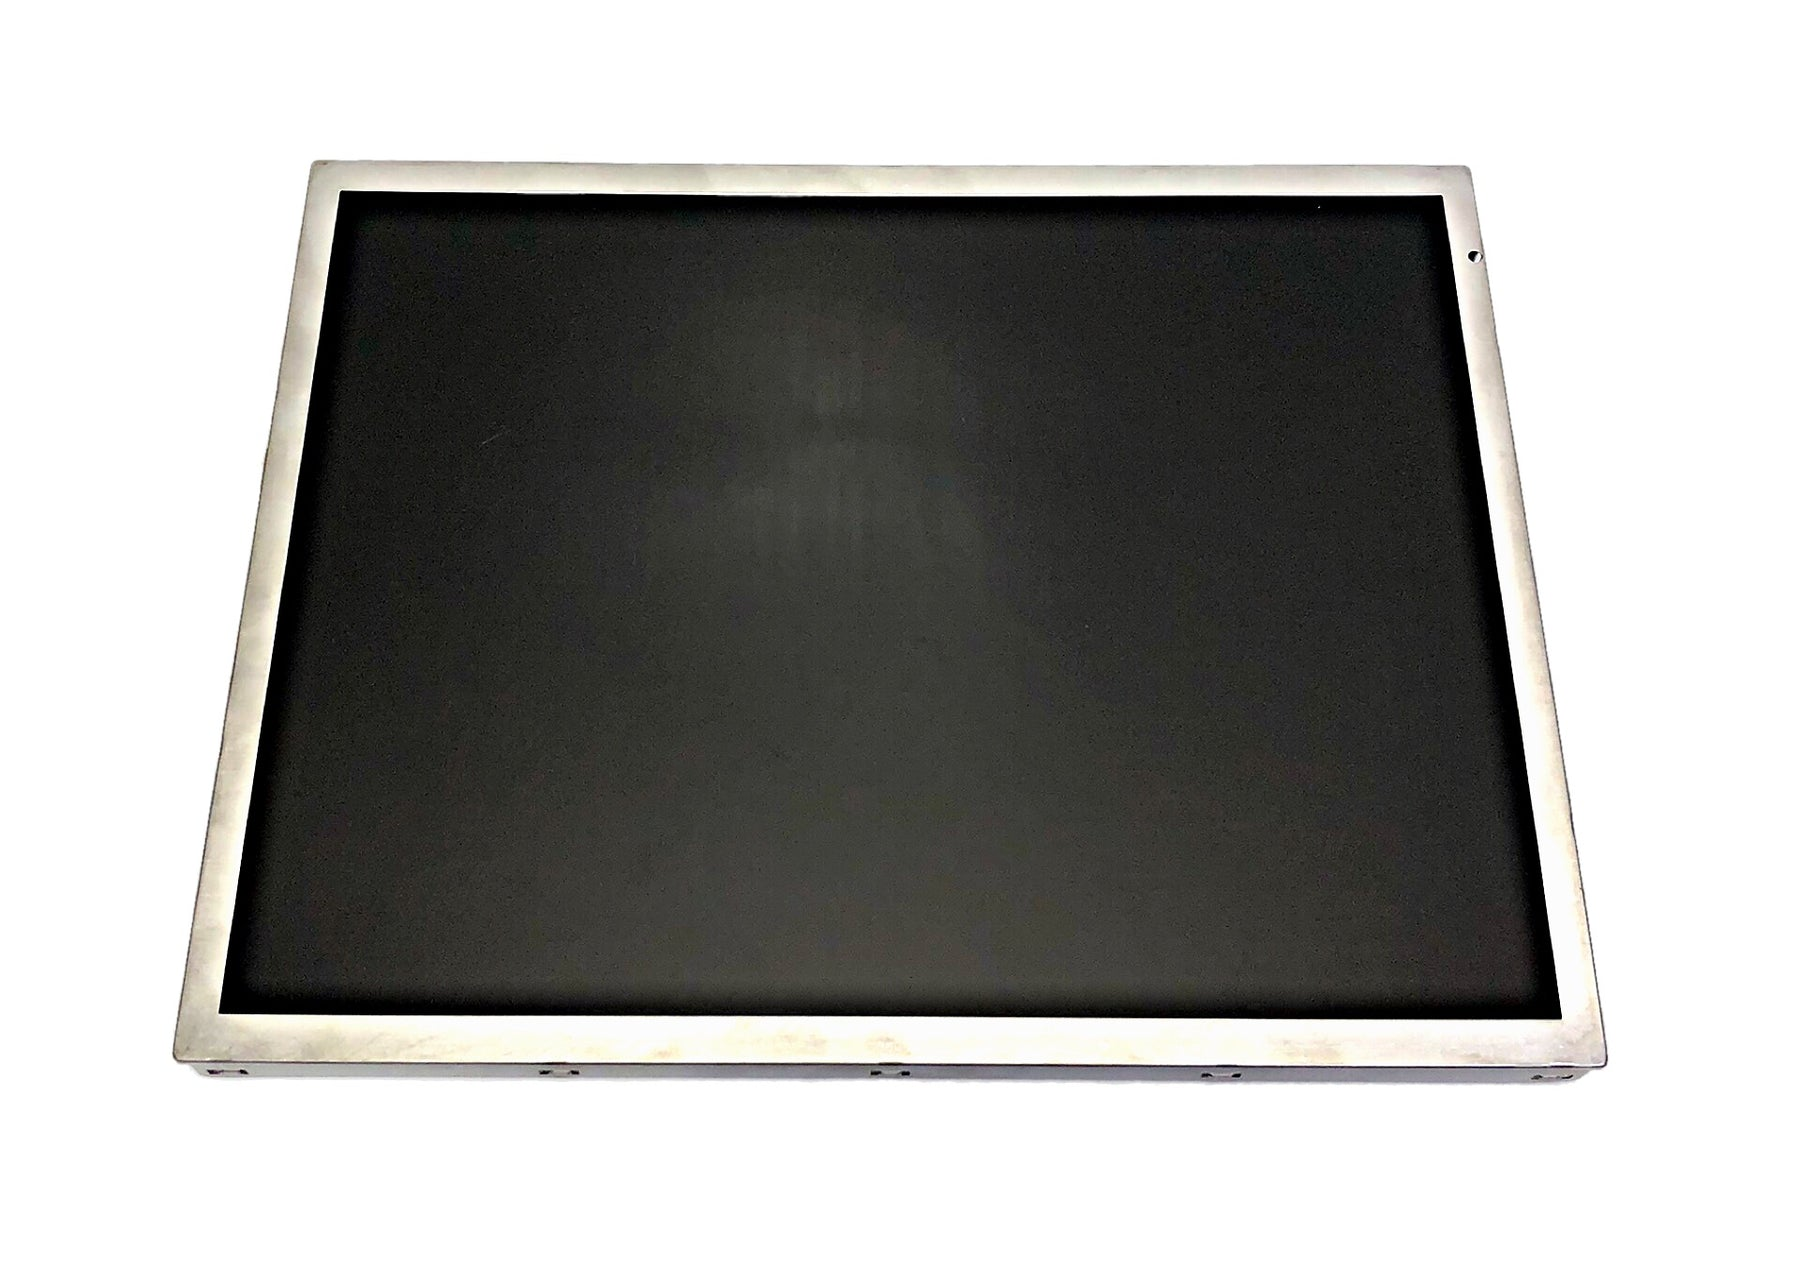 Philips Intellivue MP70 Monitor LCD Assembly 451261014041